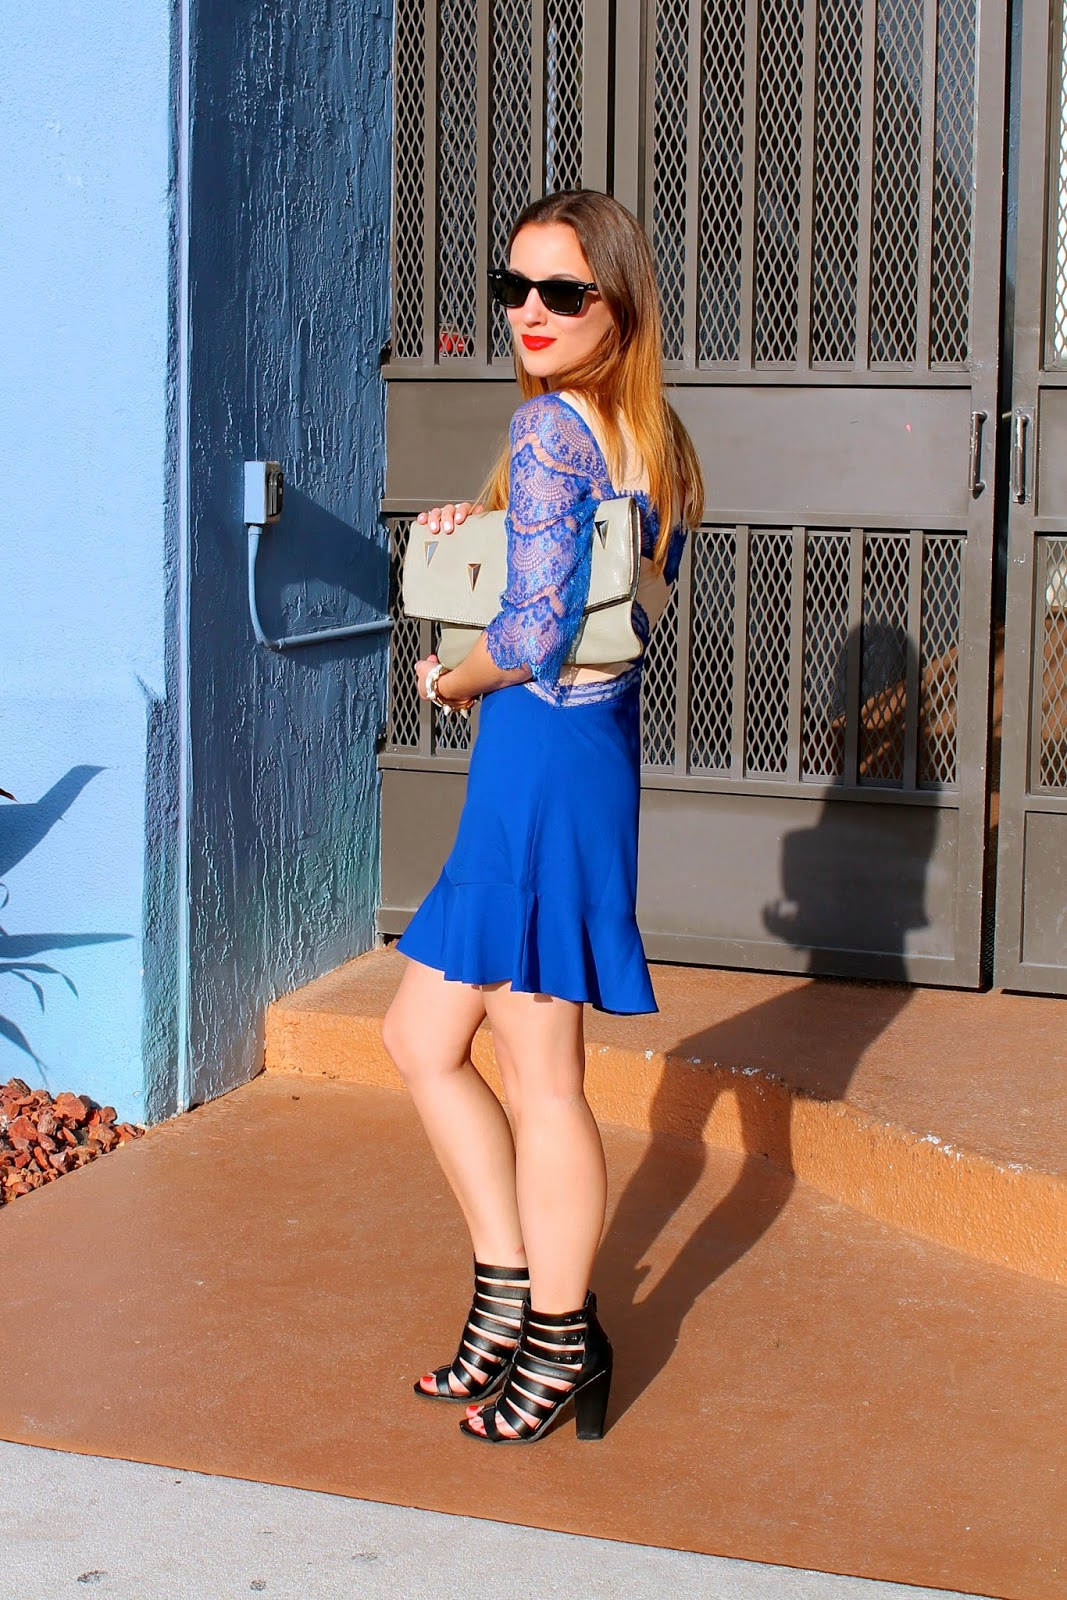 lace, Miami, fashion, style, what i wore, look book, prep, southern, edgy, Steve Madden, LF Stores, Nordstrom